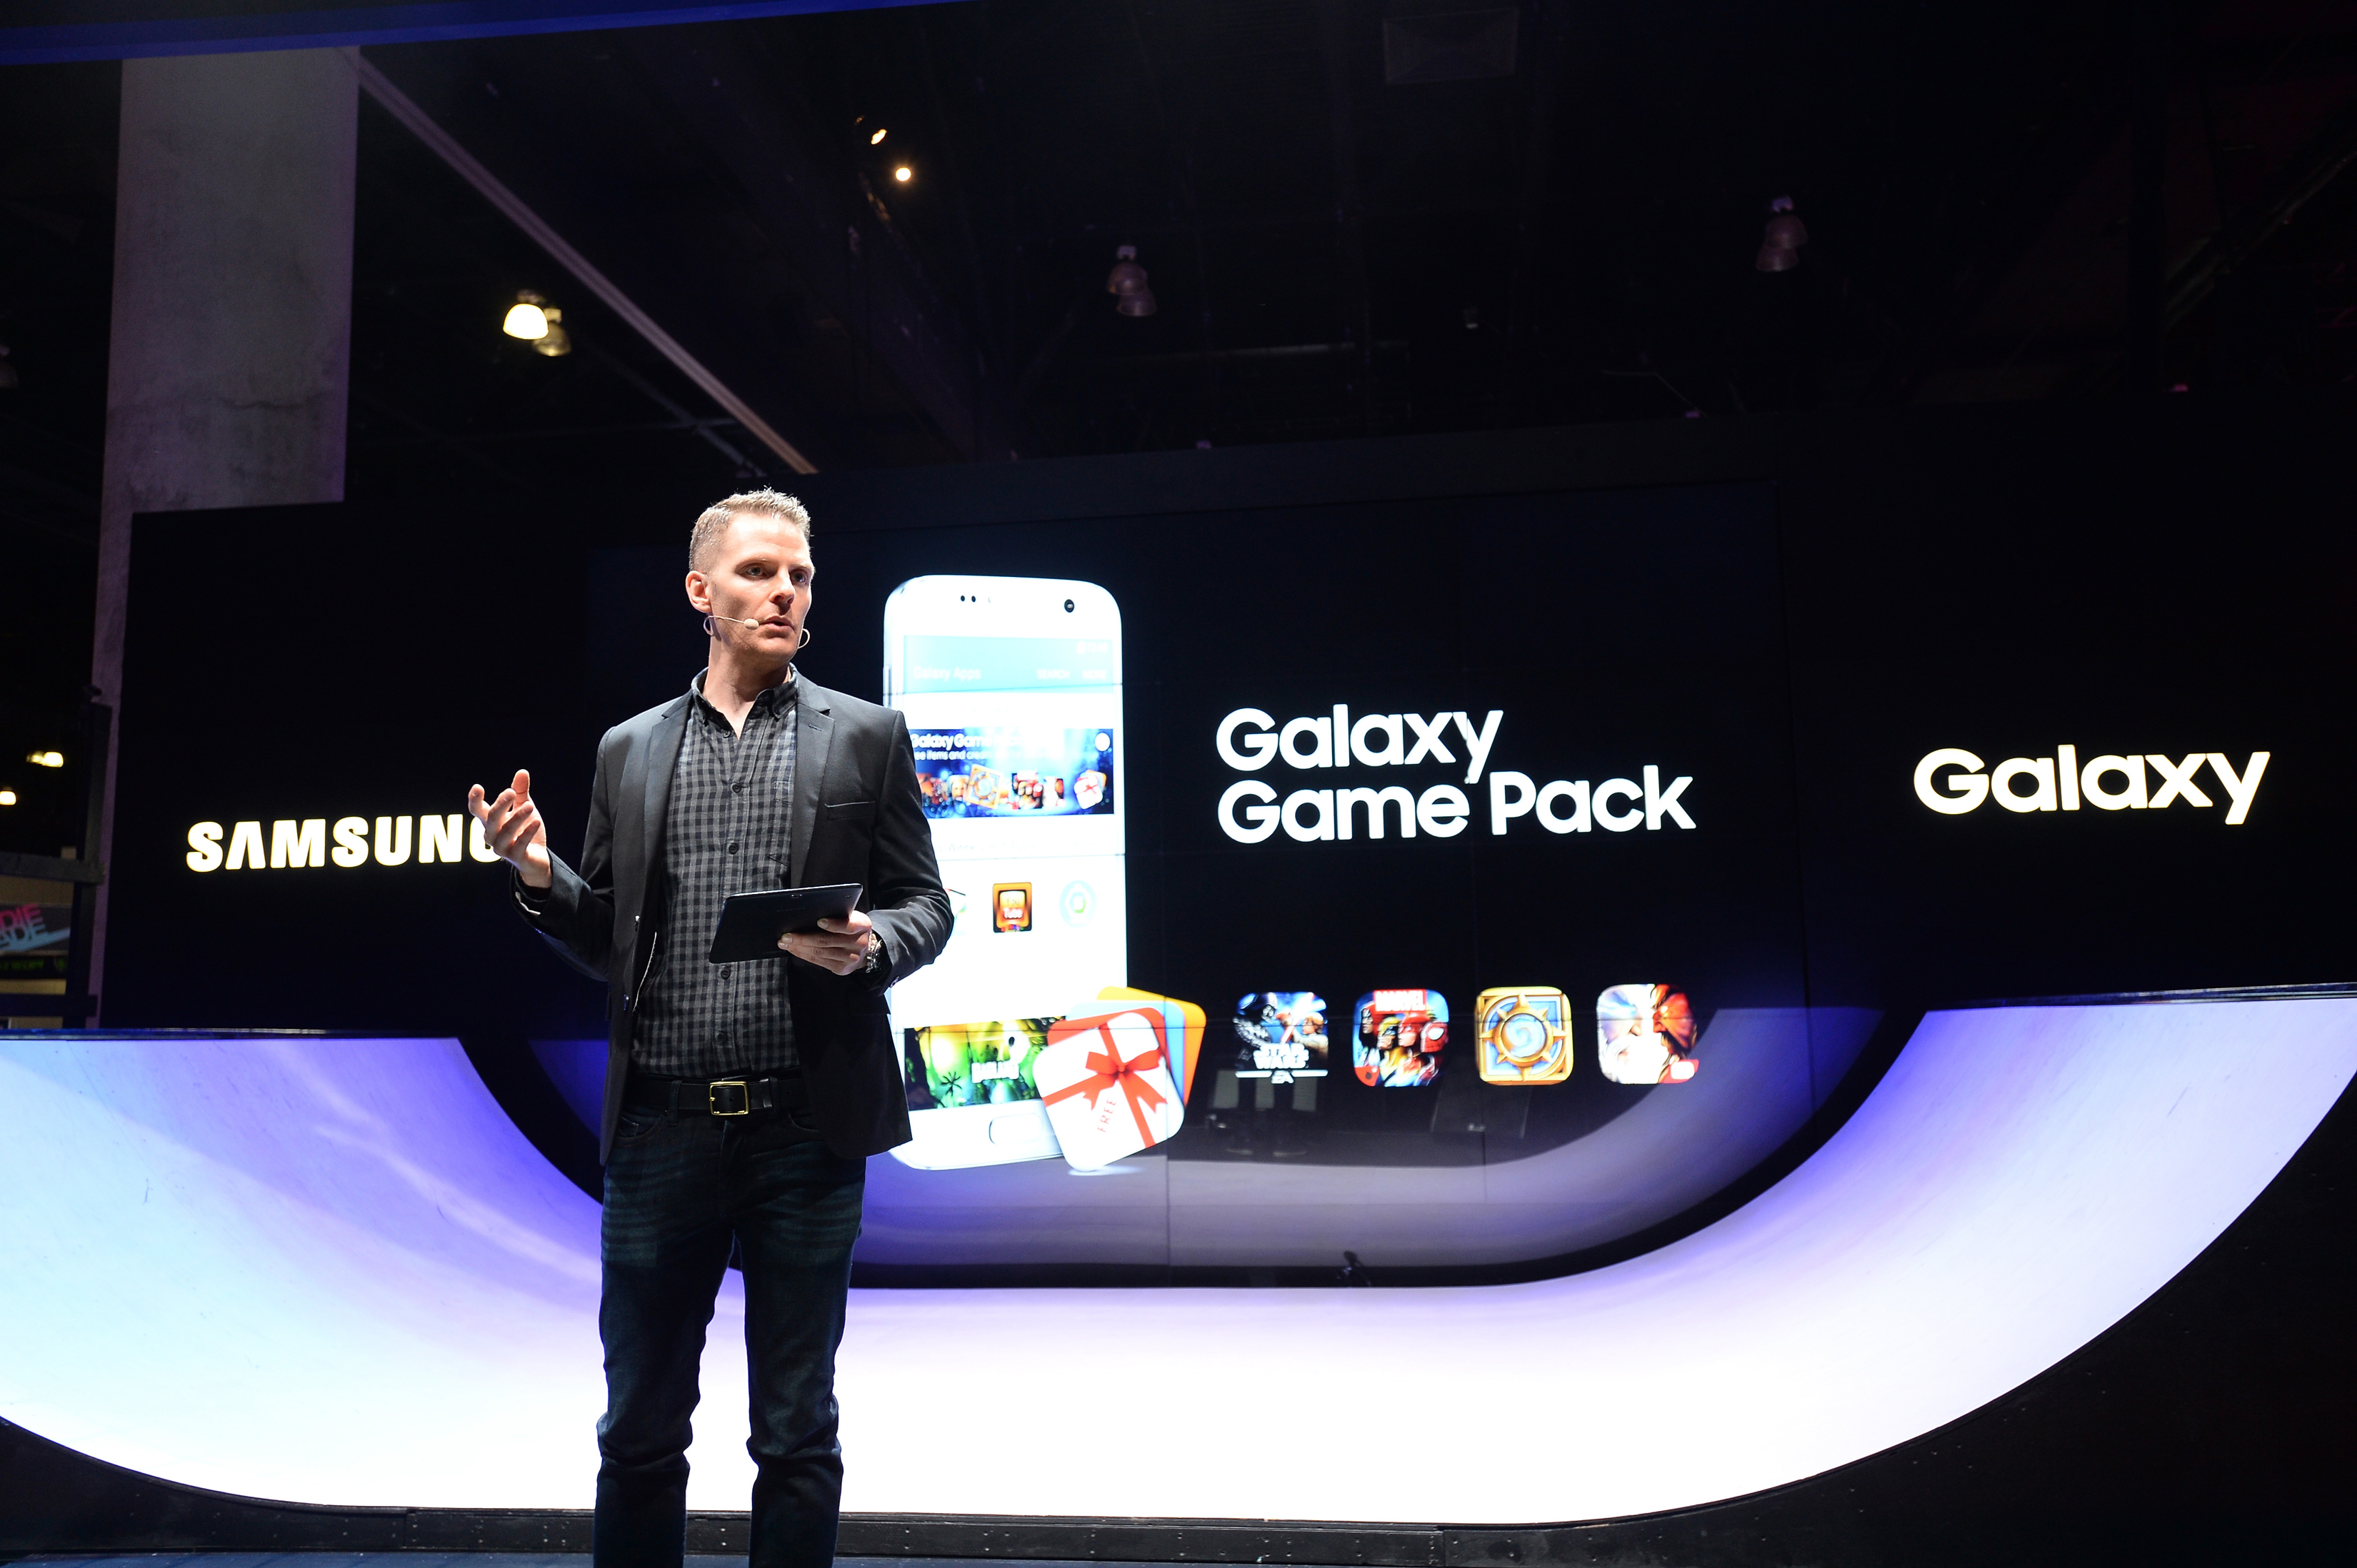 LOS ANGELES, CA - JUNE 14: Director of Immersive Products and VR at Samsung Electronics America, Jim Willson speaks onstage at the Samsung booth at E3 Expo 2016 on June 14, 2016 in Los Angeles, California. (Photo by Charley Gallay/Getty Images for Samsung)